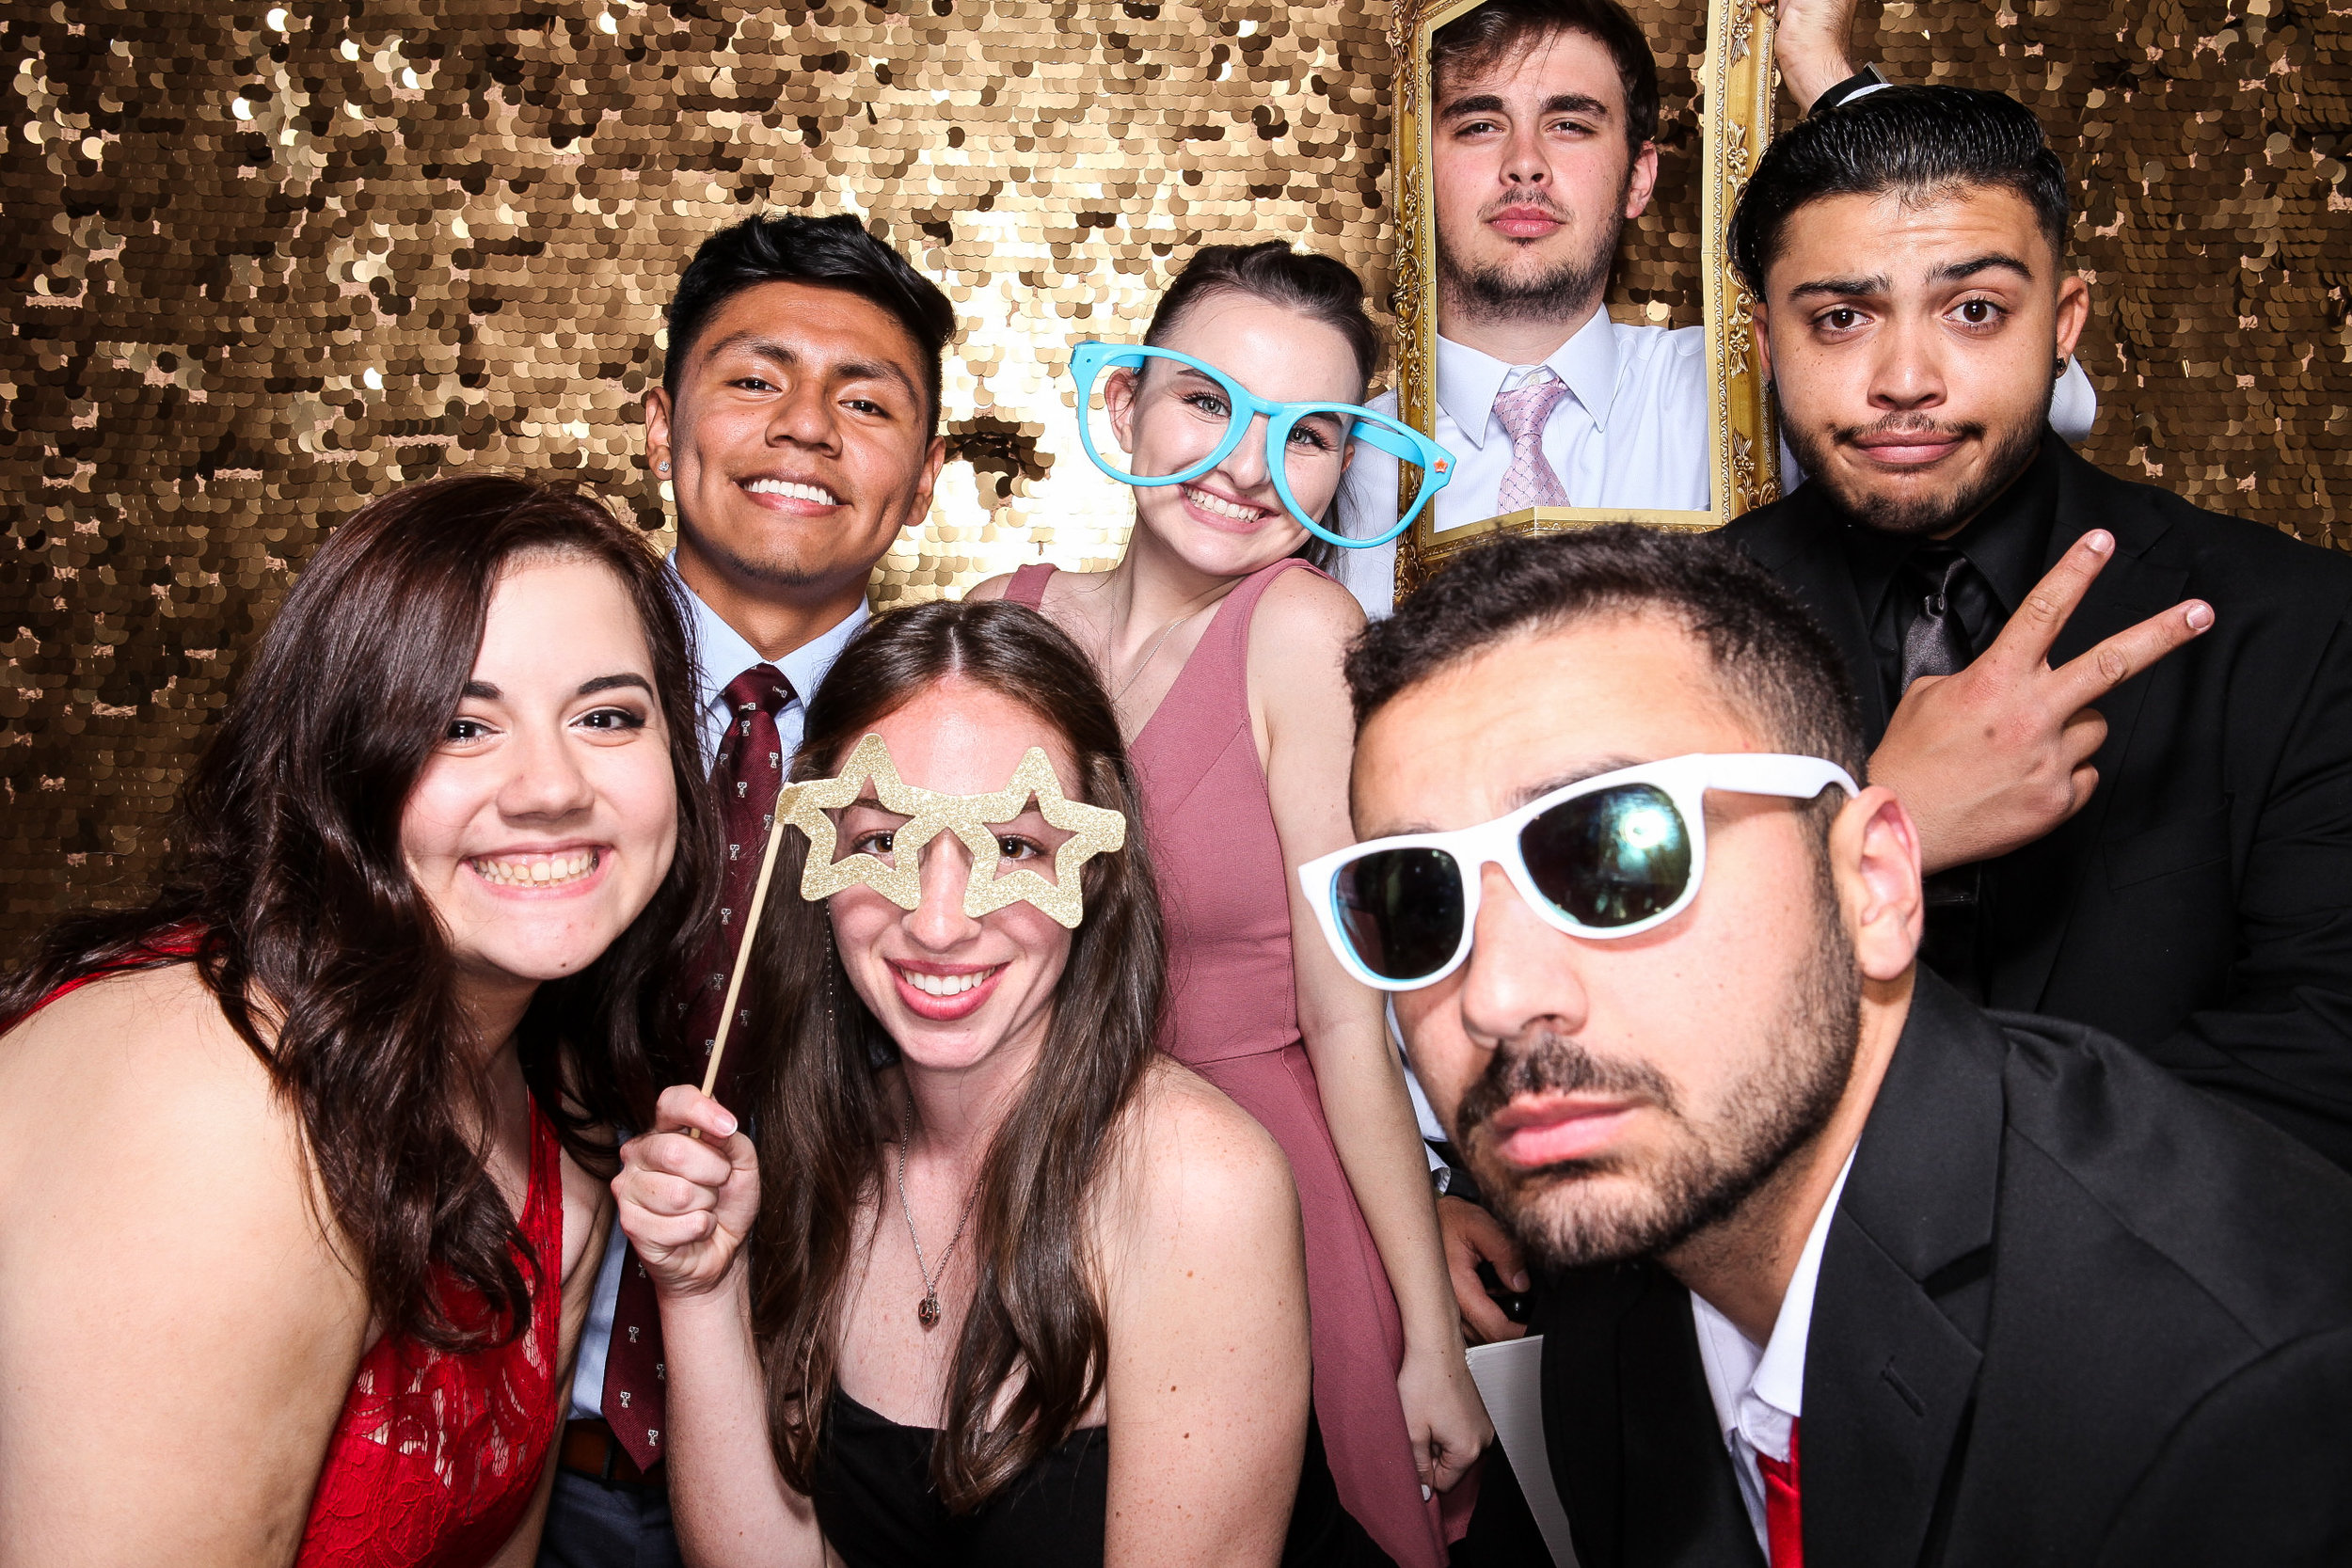 20190503_Adelphi_Senior_Formal-282.jpg